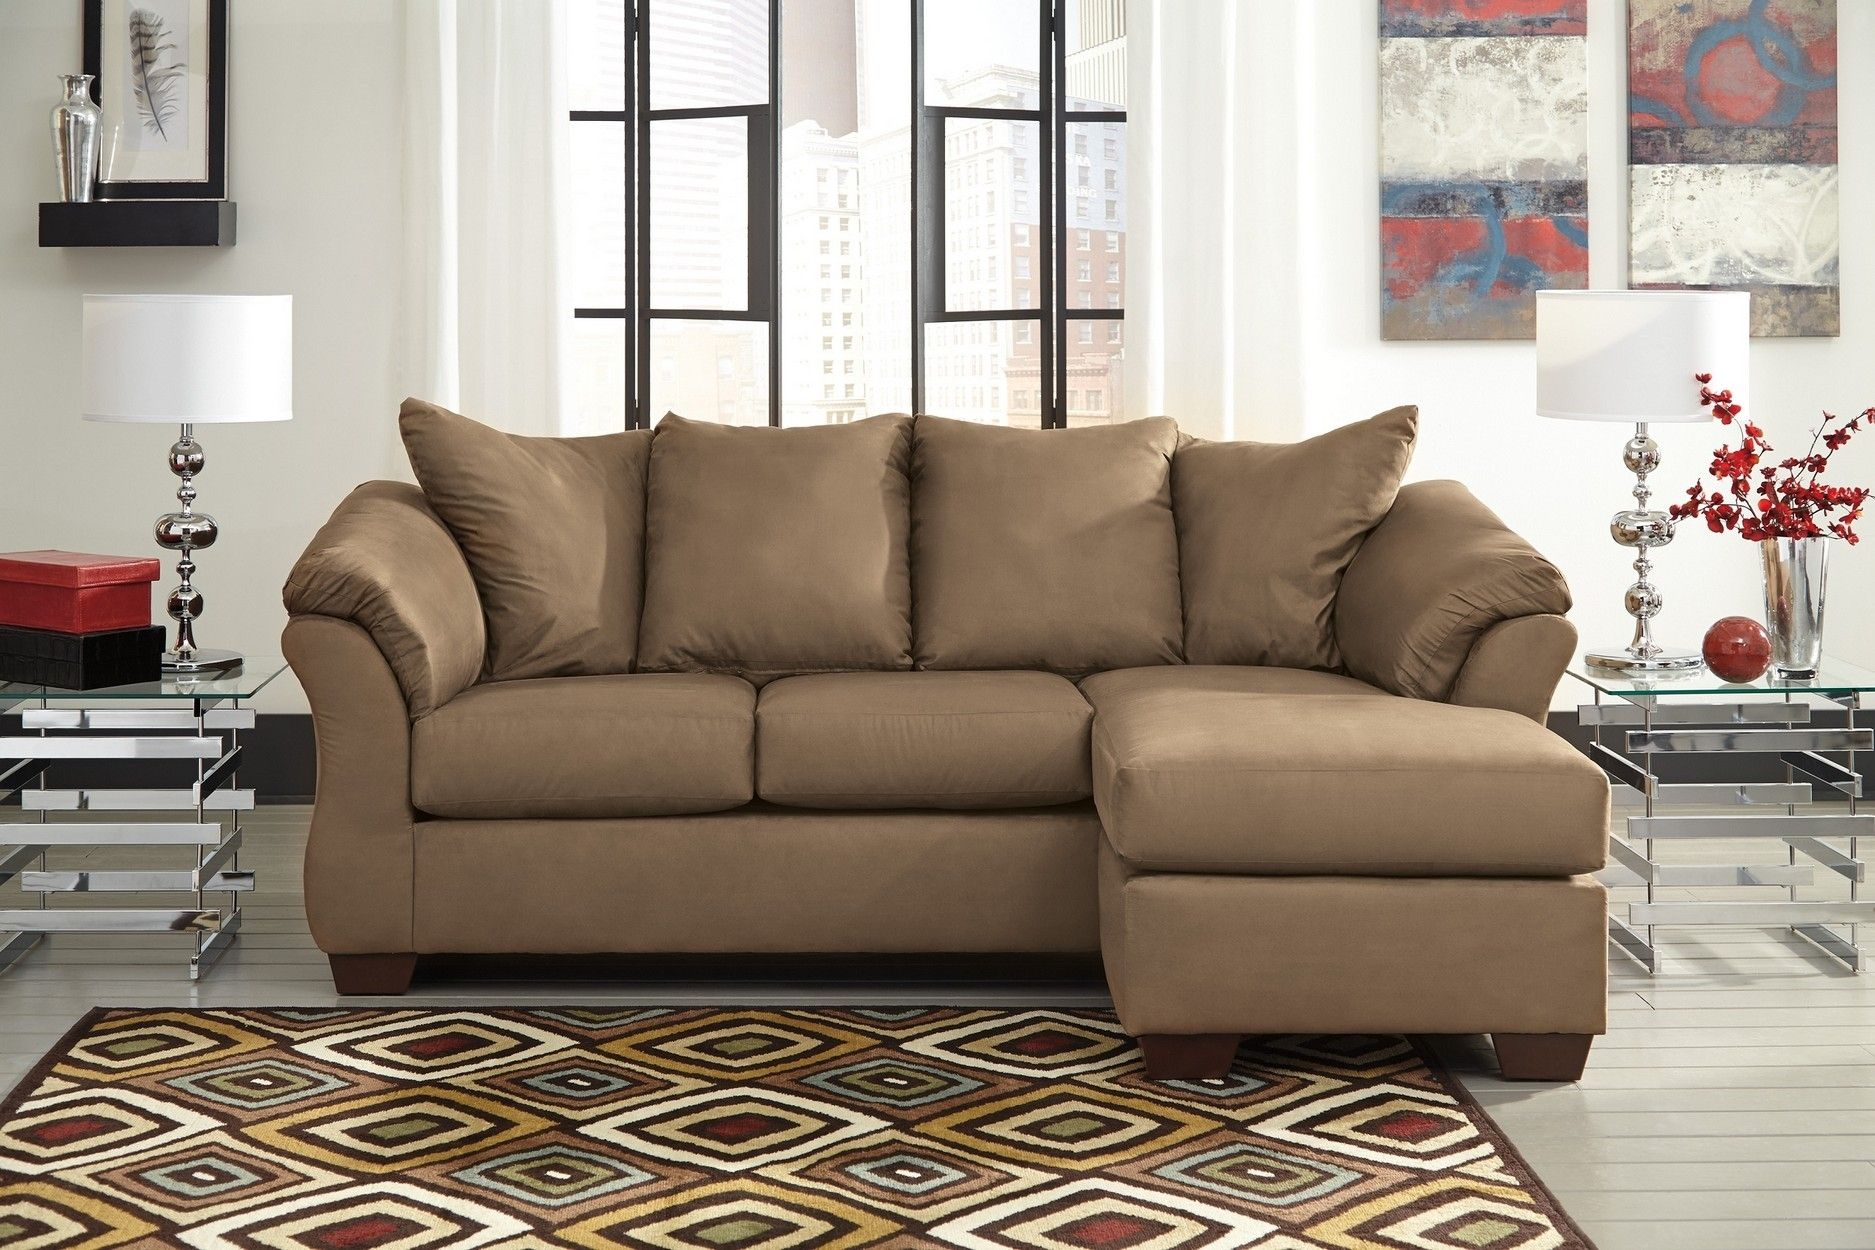 Awesome Replacement Couch Cushions Ashley Furniture Inspirational 70 With Additional